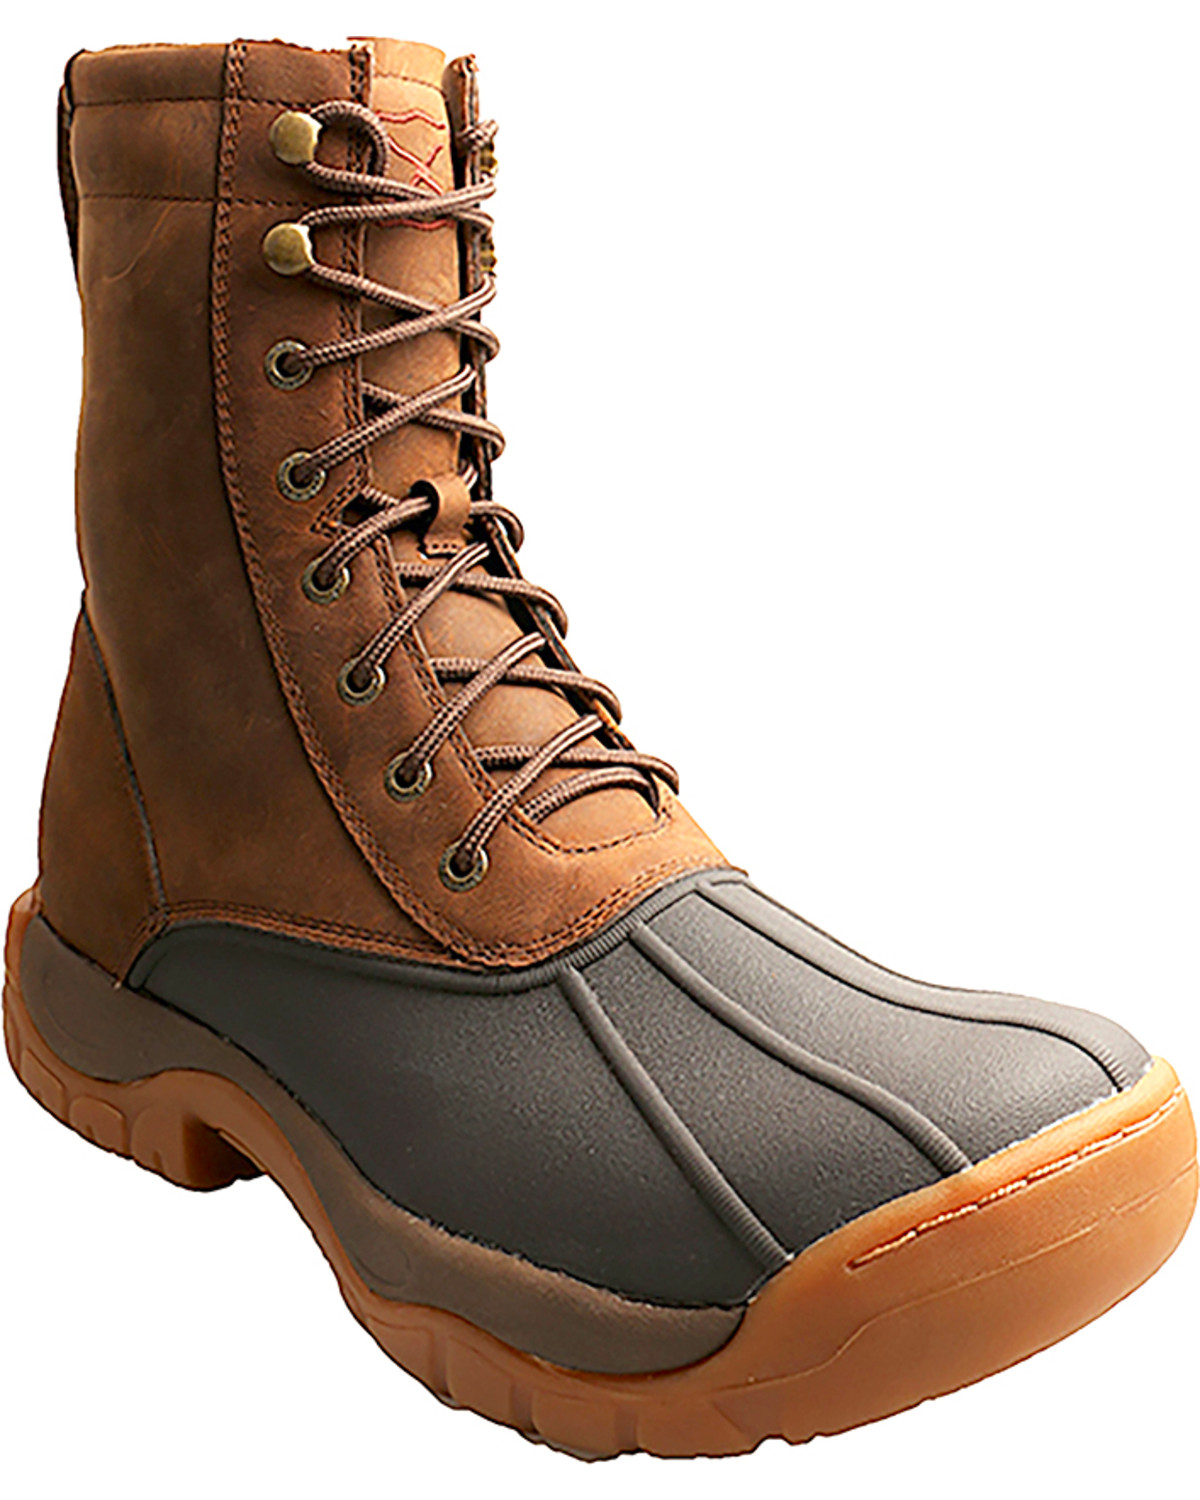 Lace-Up Guide Rubber Boots | Boot Barn